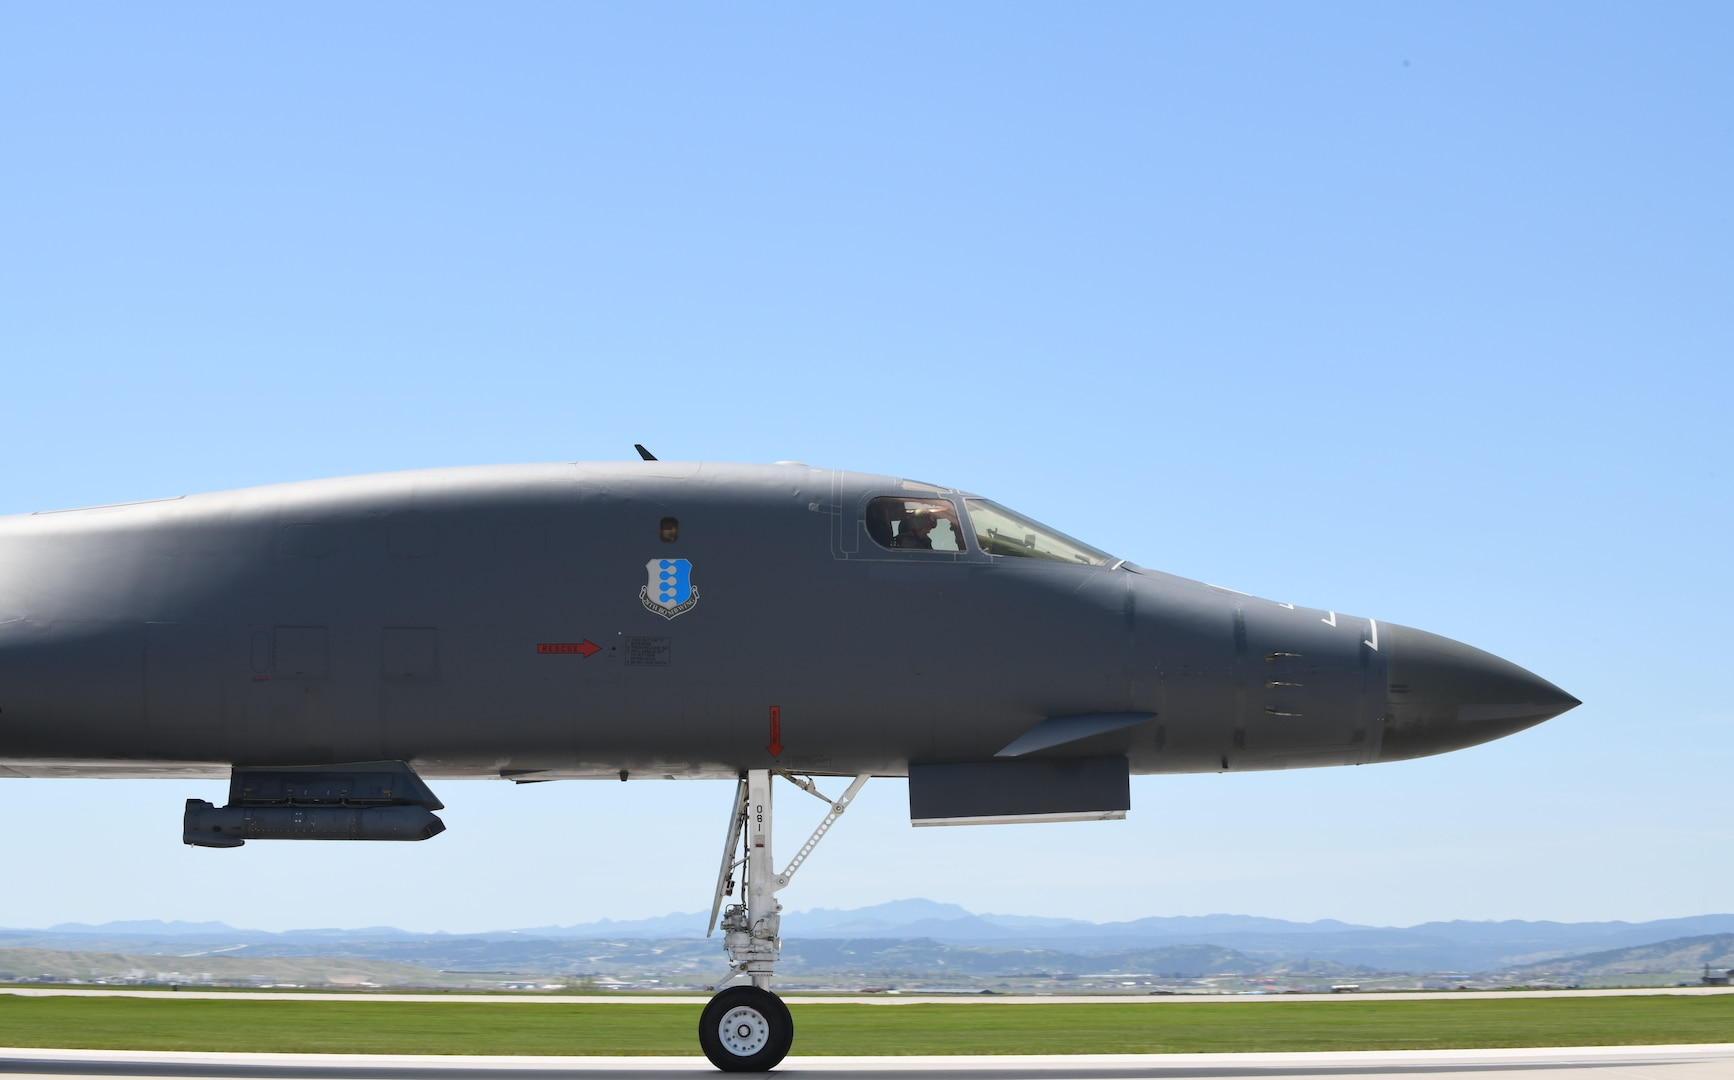 A 34th Bomb Squadron B-1B Lancer taxis on the flight line prior to takeoff from Ellsworth Air Force Base, S.D., May 19, 2020, in support of a Bomber Task Force mission to the U.S. European Command area of responsibility May 19, 2020. These long-range, long-duration B-1 missions demonstrate the U.S. Air Force's global strike capacity and ability to deliver precision-guided ordnance against any adversary - anytime, anywhere. (U.S. Air Force photo by Airman 1st Class Christina Bennett)